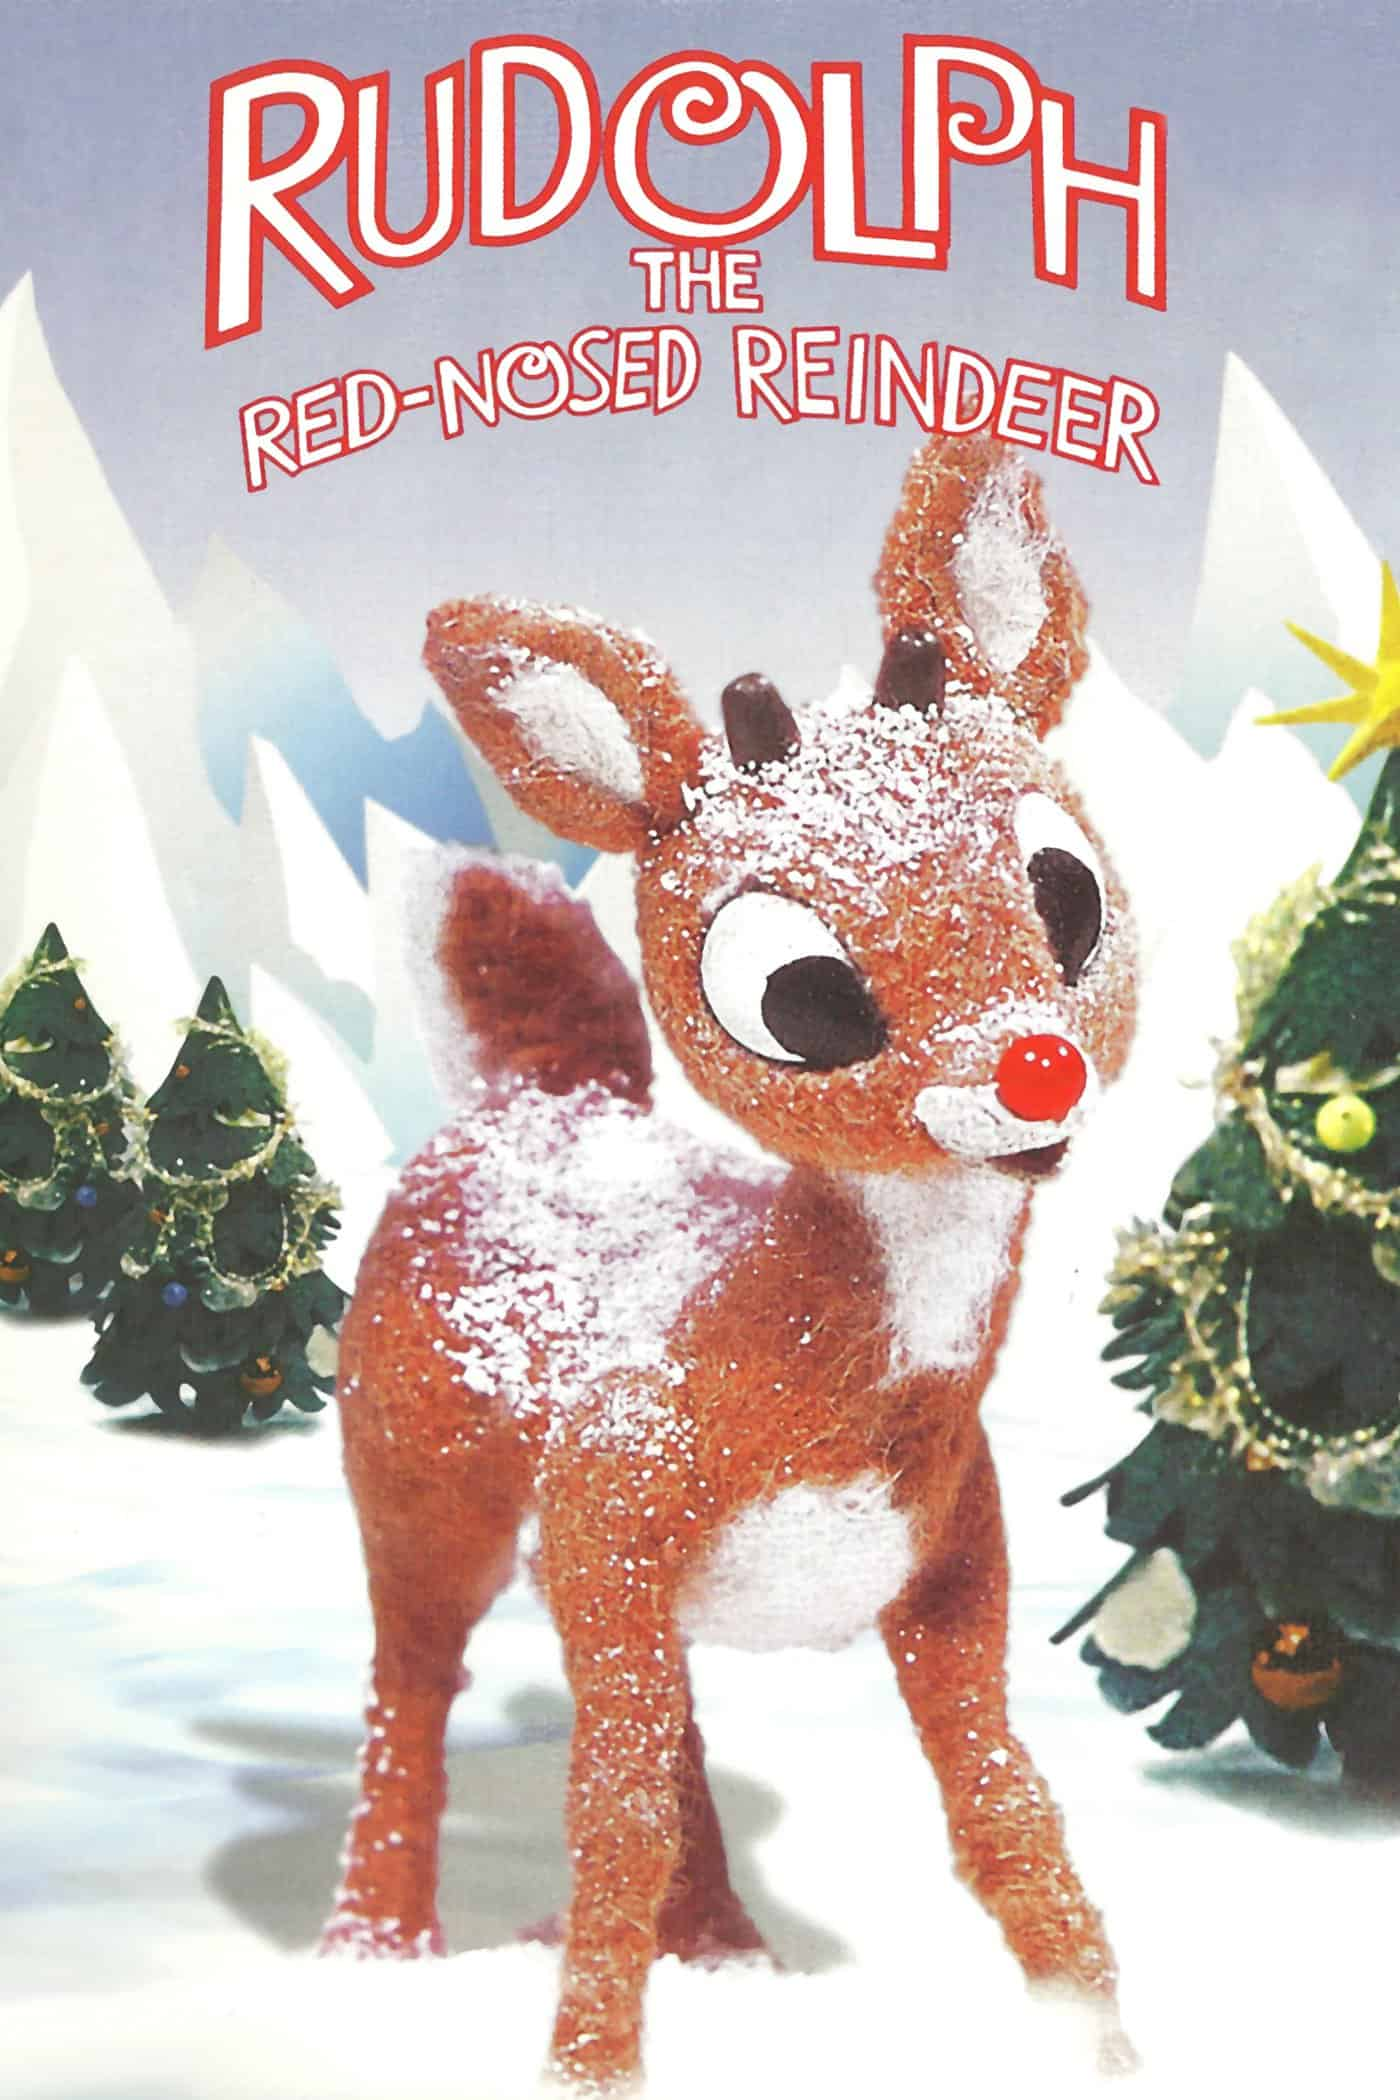 Rudolph the Red-Nosed Reindeer, 1964